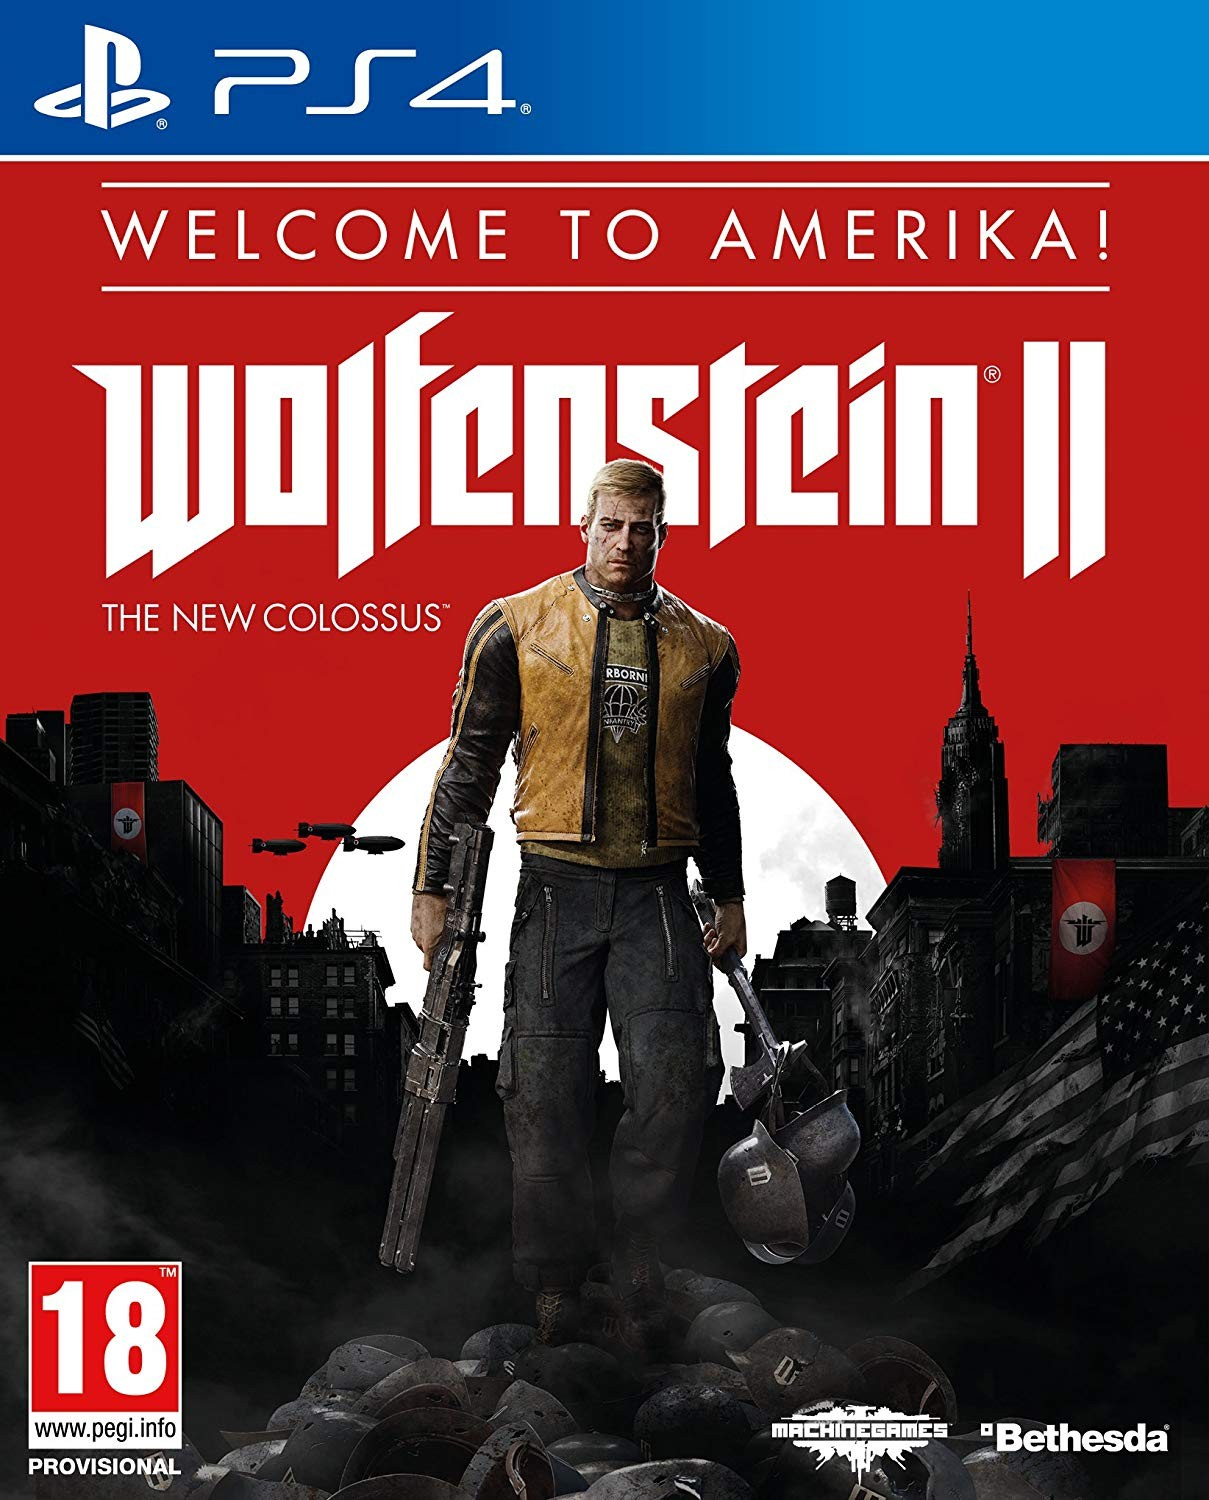 Wolfenstein II: The New Colossus Welcome to Amerika PS4